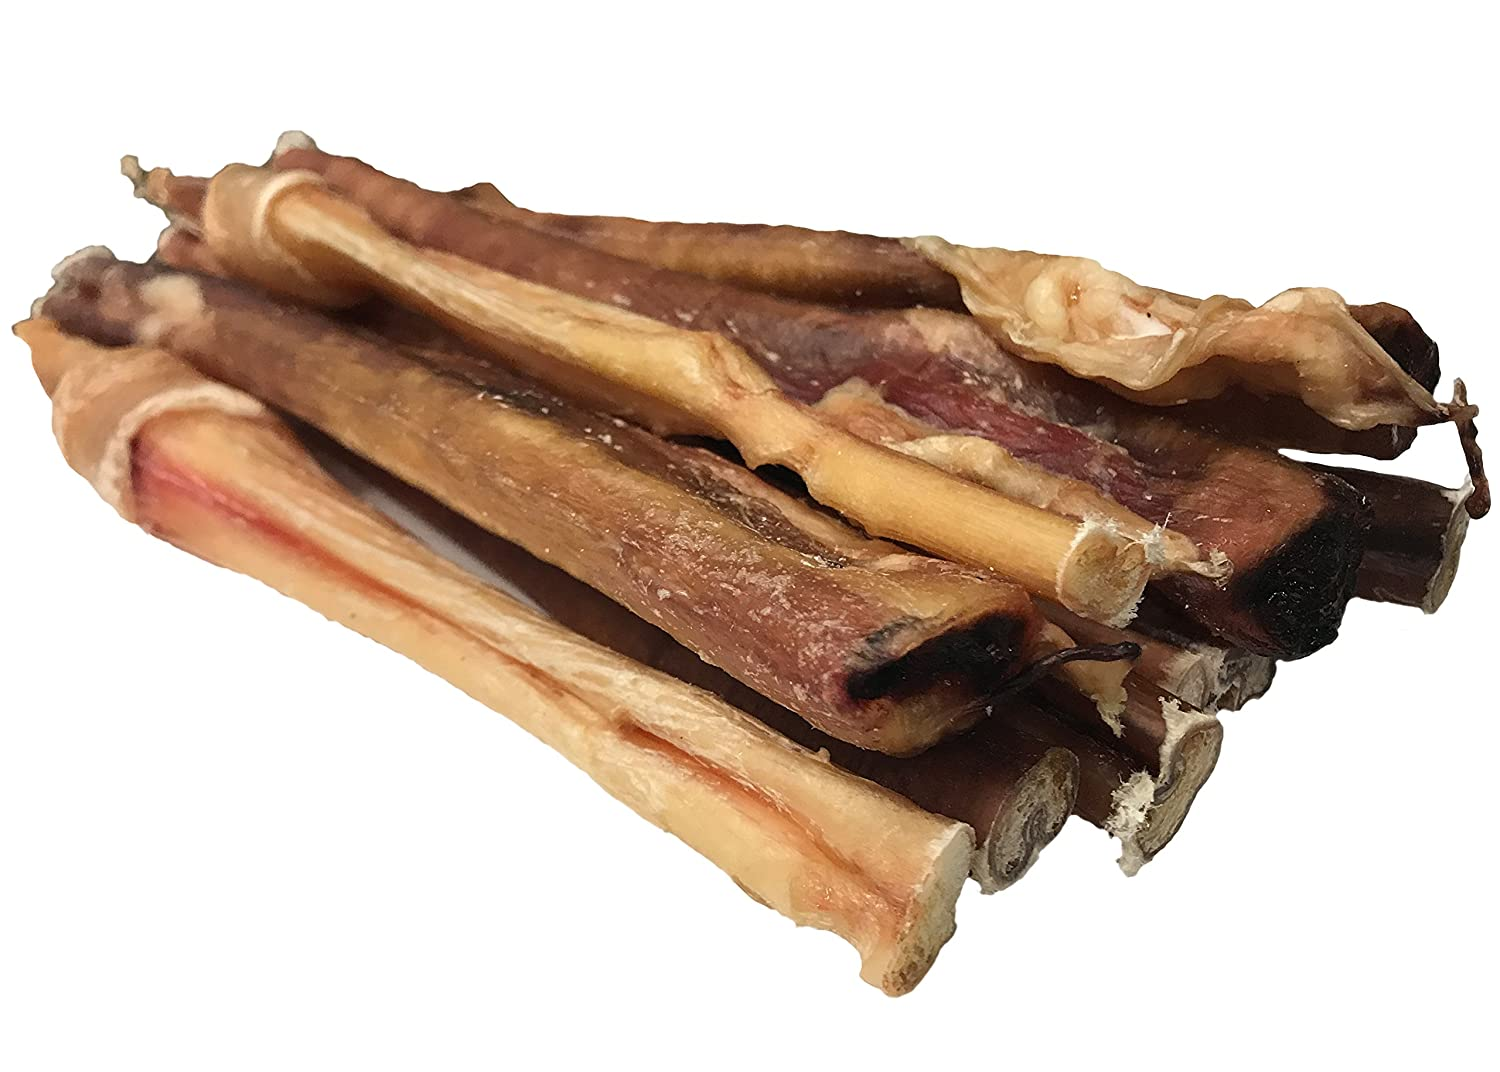 11-12 Inches Loyalty Dog Treats, Natural Scent Bully Sticks for Dogs, All-Natural and Healthy, Dehydrated Free Range, Grass Fed Beef, Free of Any Hormones or Additives, 11-12 Inches; 10 Pack